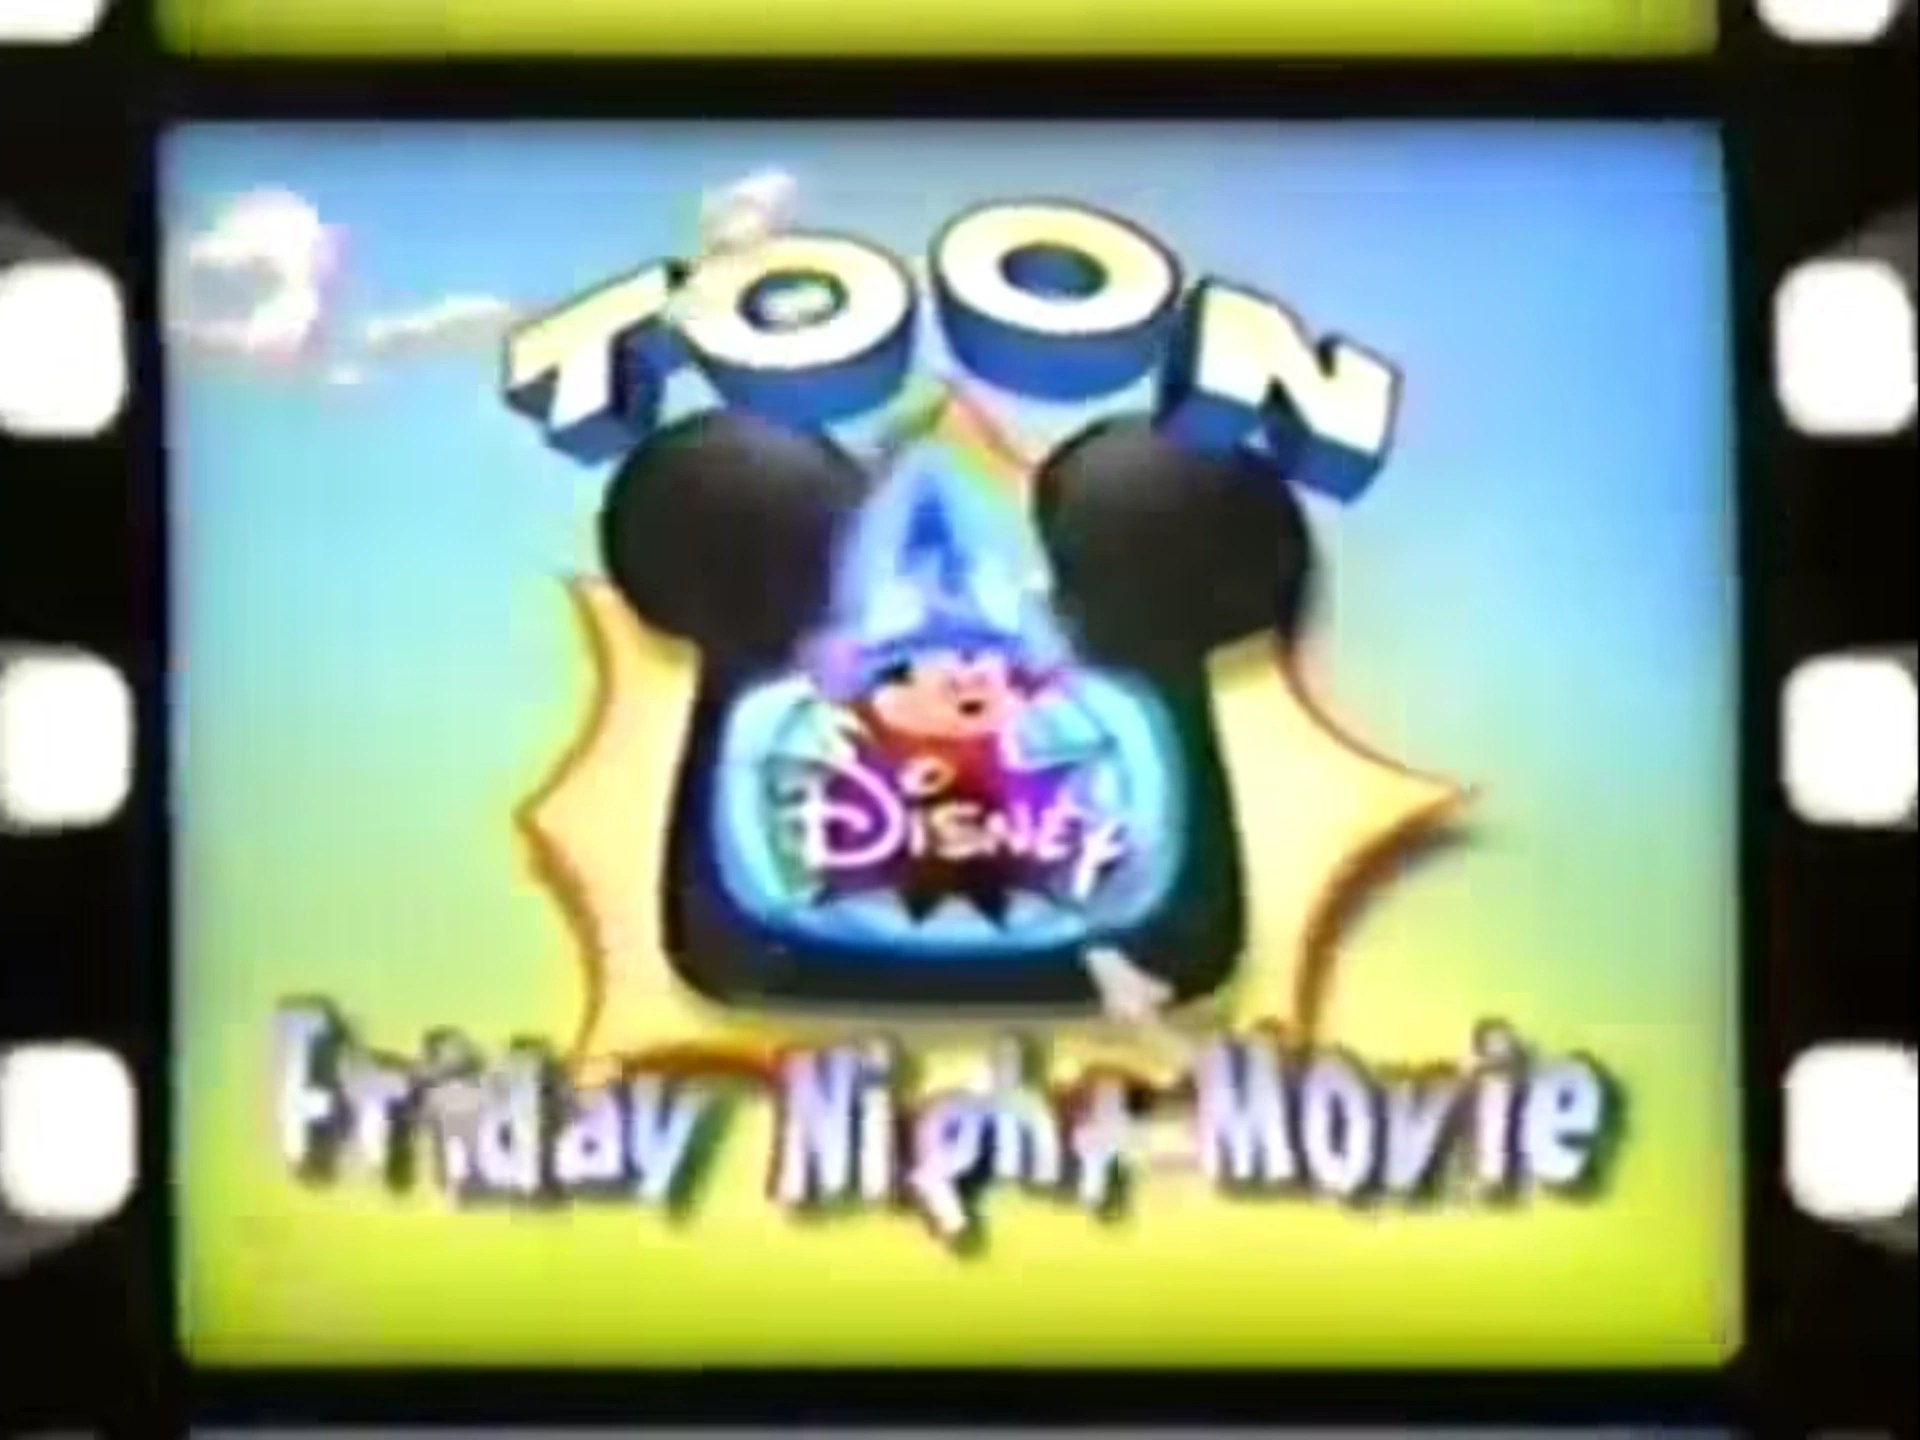 20 Toon Disney Movies Pictures And Ideas On Meta Networks